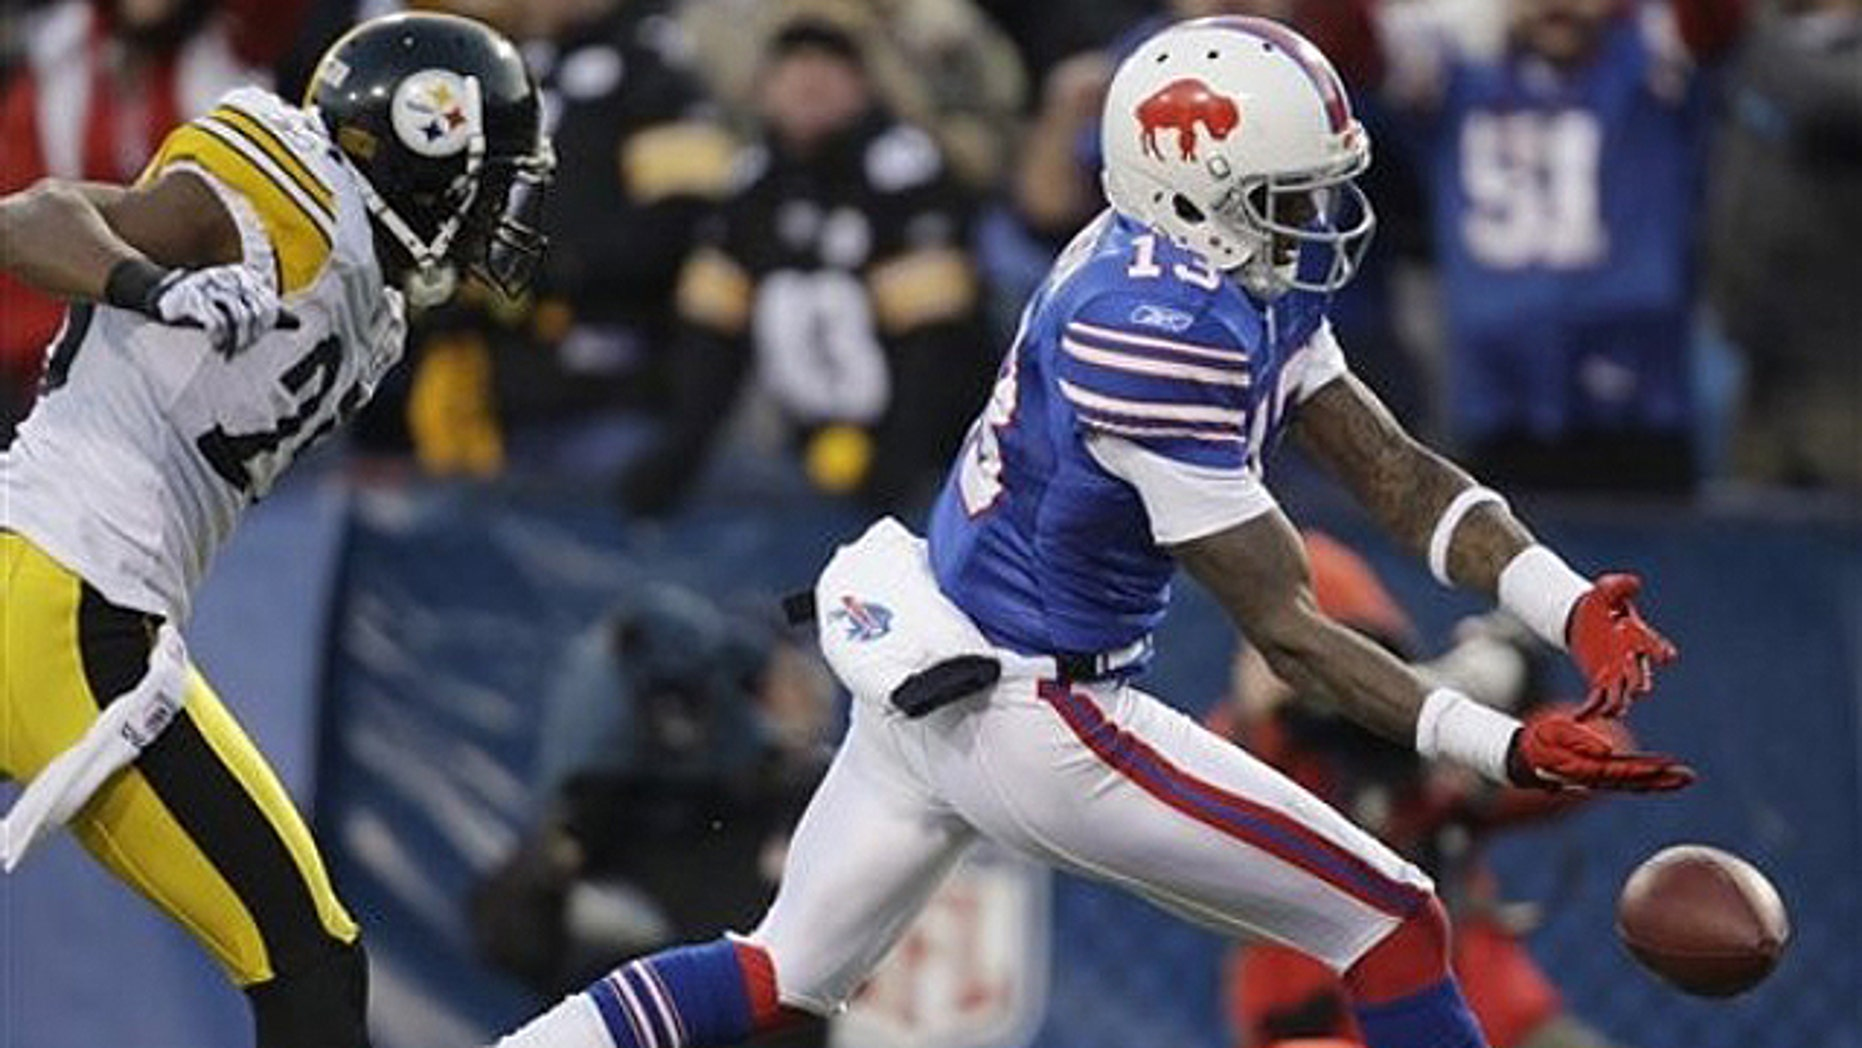 Nov. 28: Buffalo Bills' Steve Johnson (13) drops a pass in the endzone in overtime under pressure from Pittsburgh Steelers' Ryan Clark (25) during an NFL football game in Orchard Park, N.Y. The Steelers won 19-16 in overtime.  (AP)